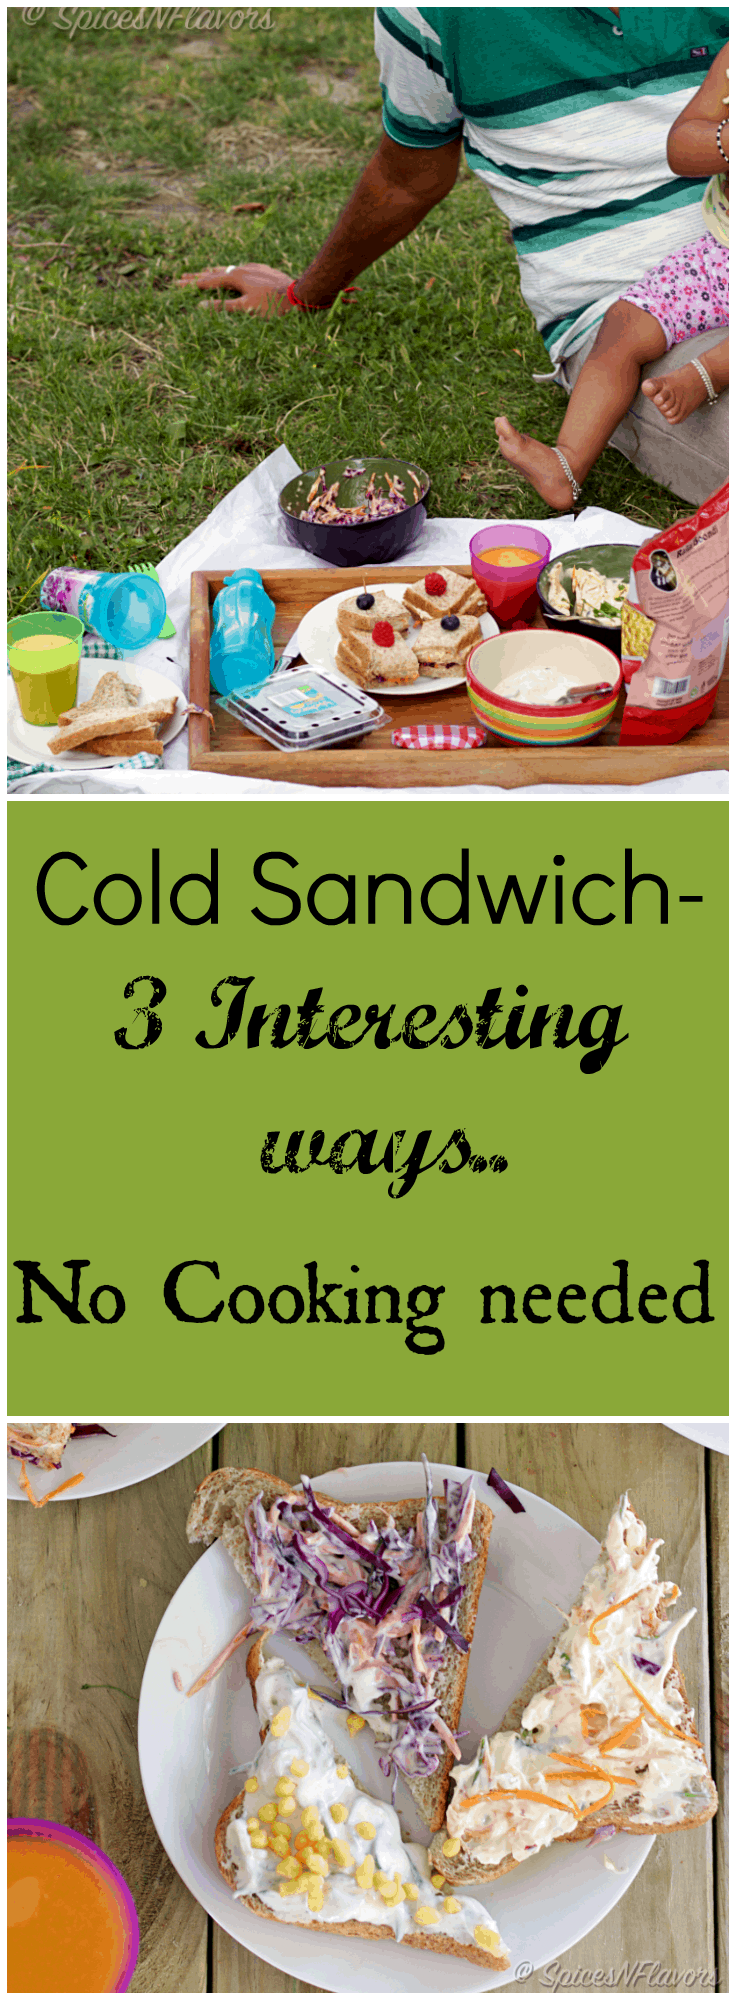 cold-sandwich-3-interesting-ideas with 3 different and delicious filling ideas perfect for back to school